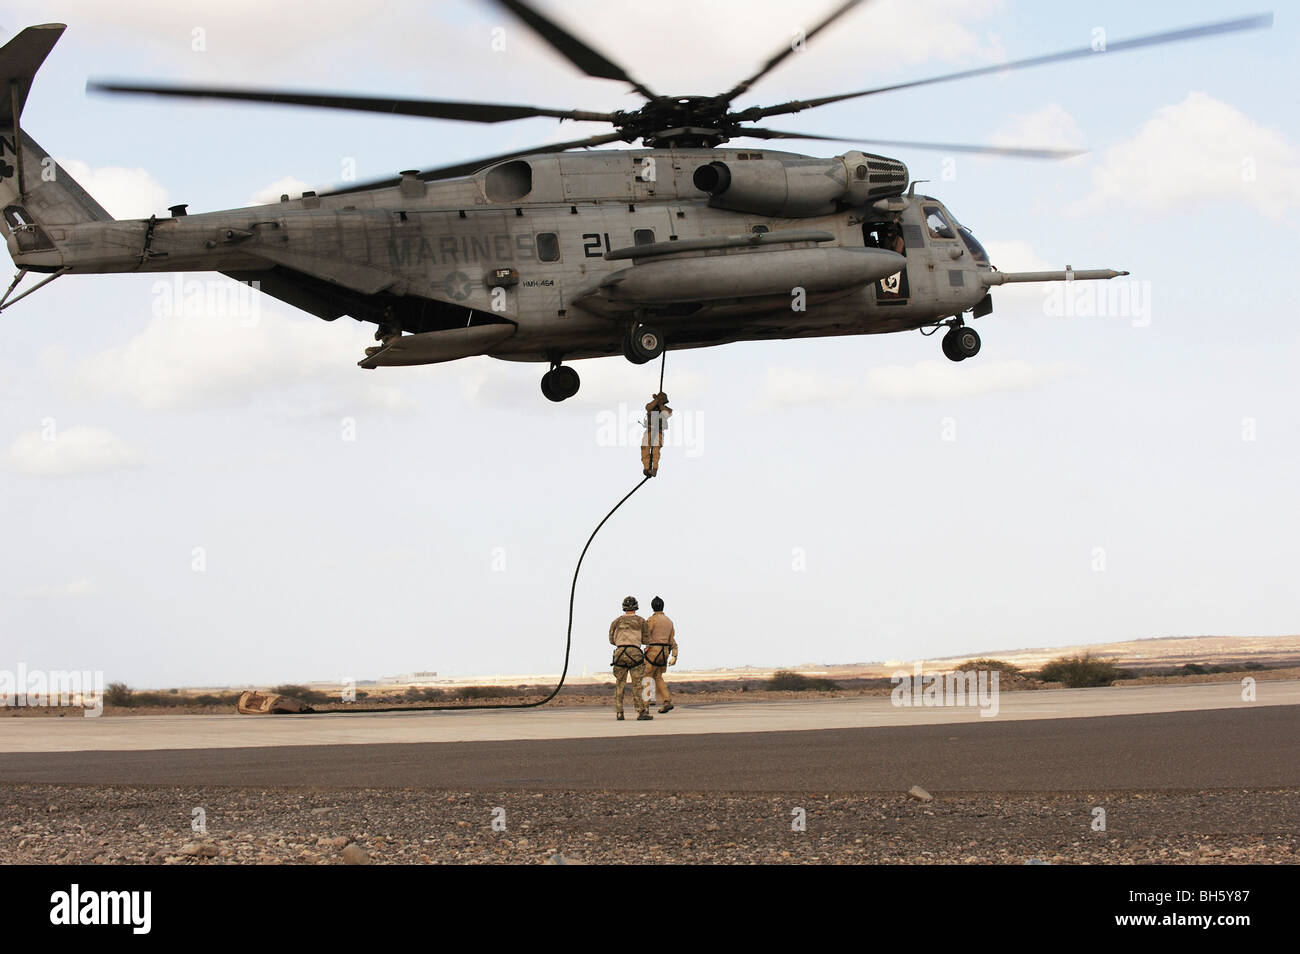 Air Force pararescuemen conduct a combat insertion and extraction exercise in Djibouti, Africa. - Stock Image